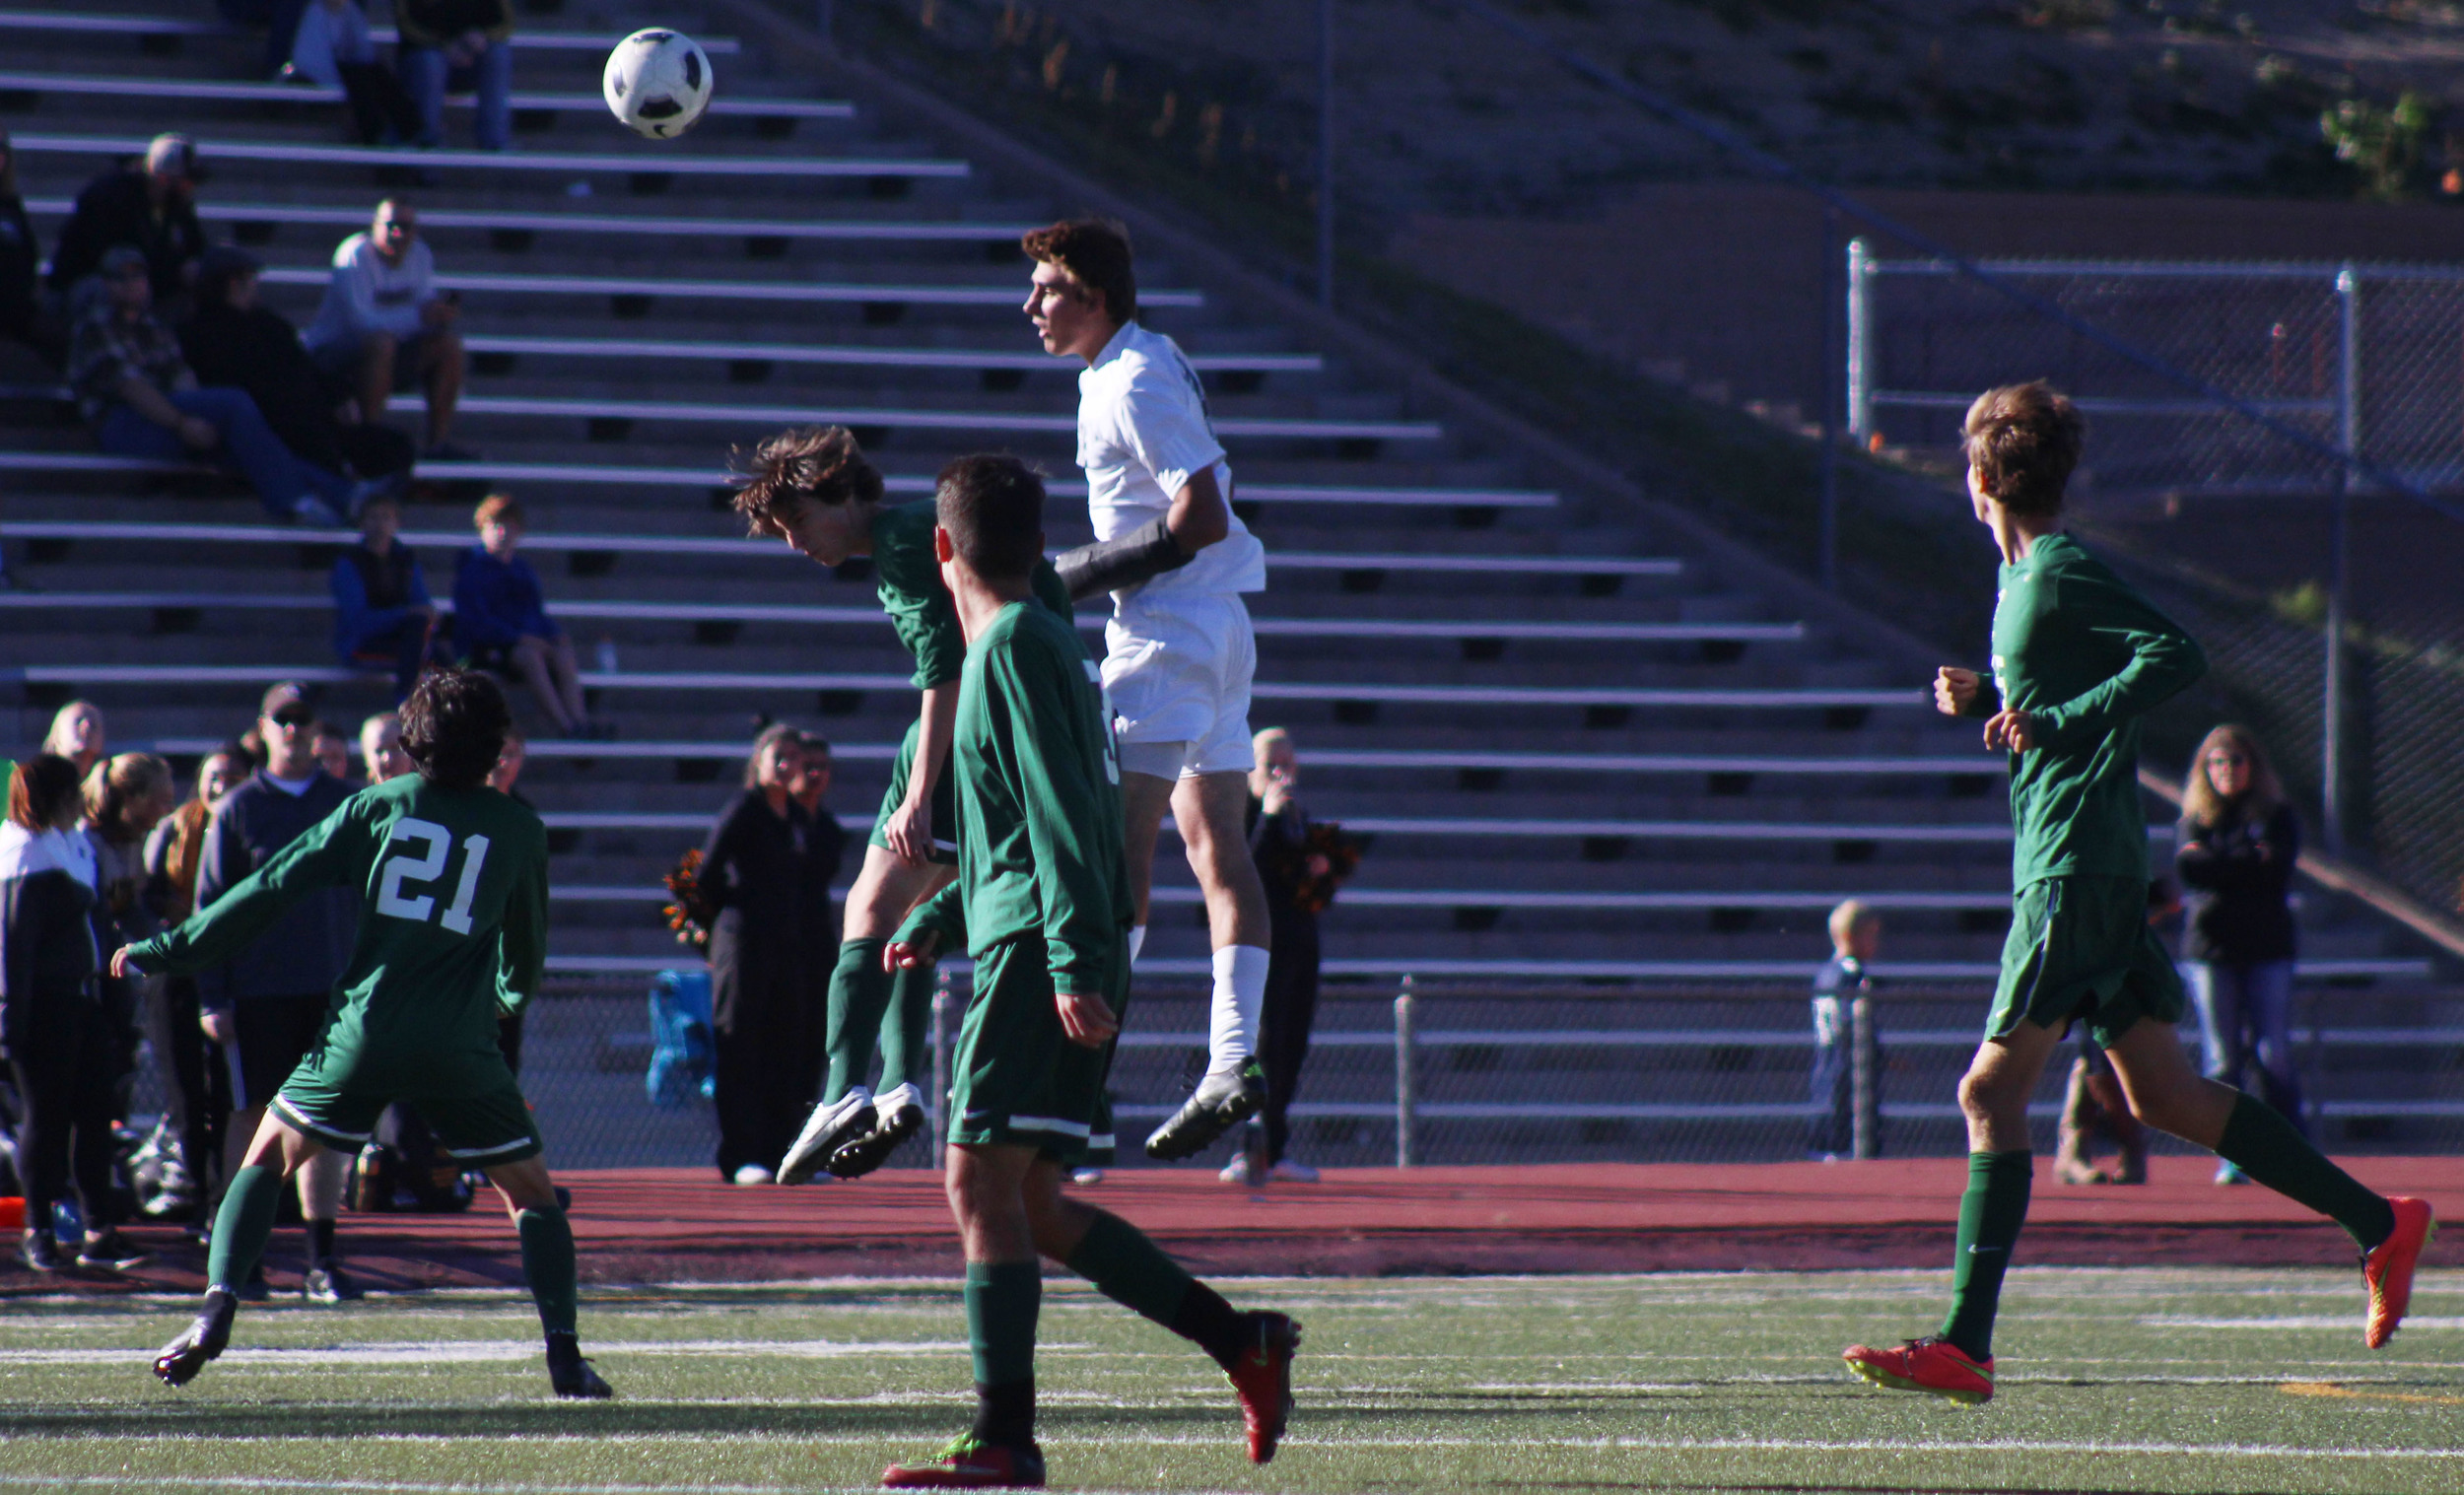 Senior Matias Grossi and an Arapahoe player head a ball into Vista territory.